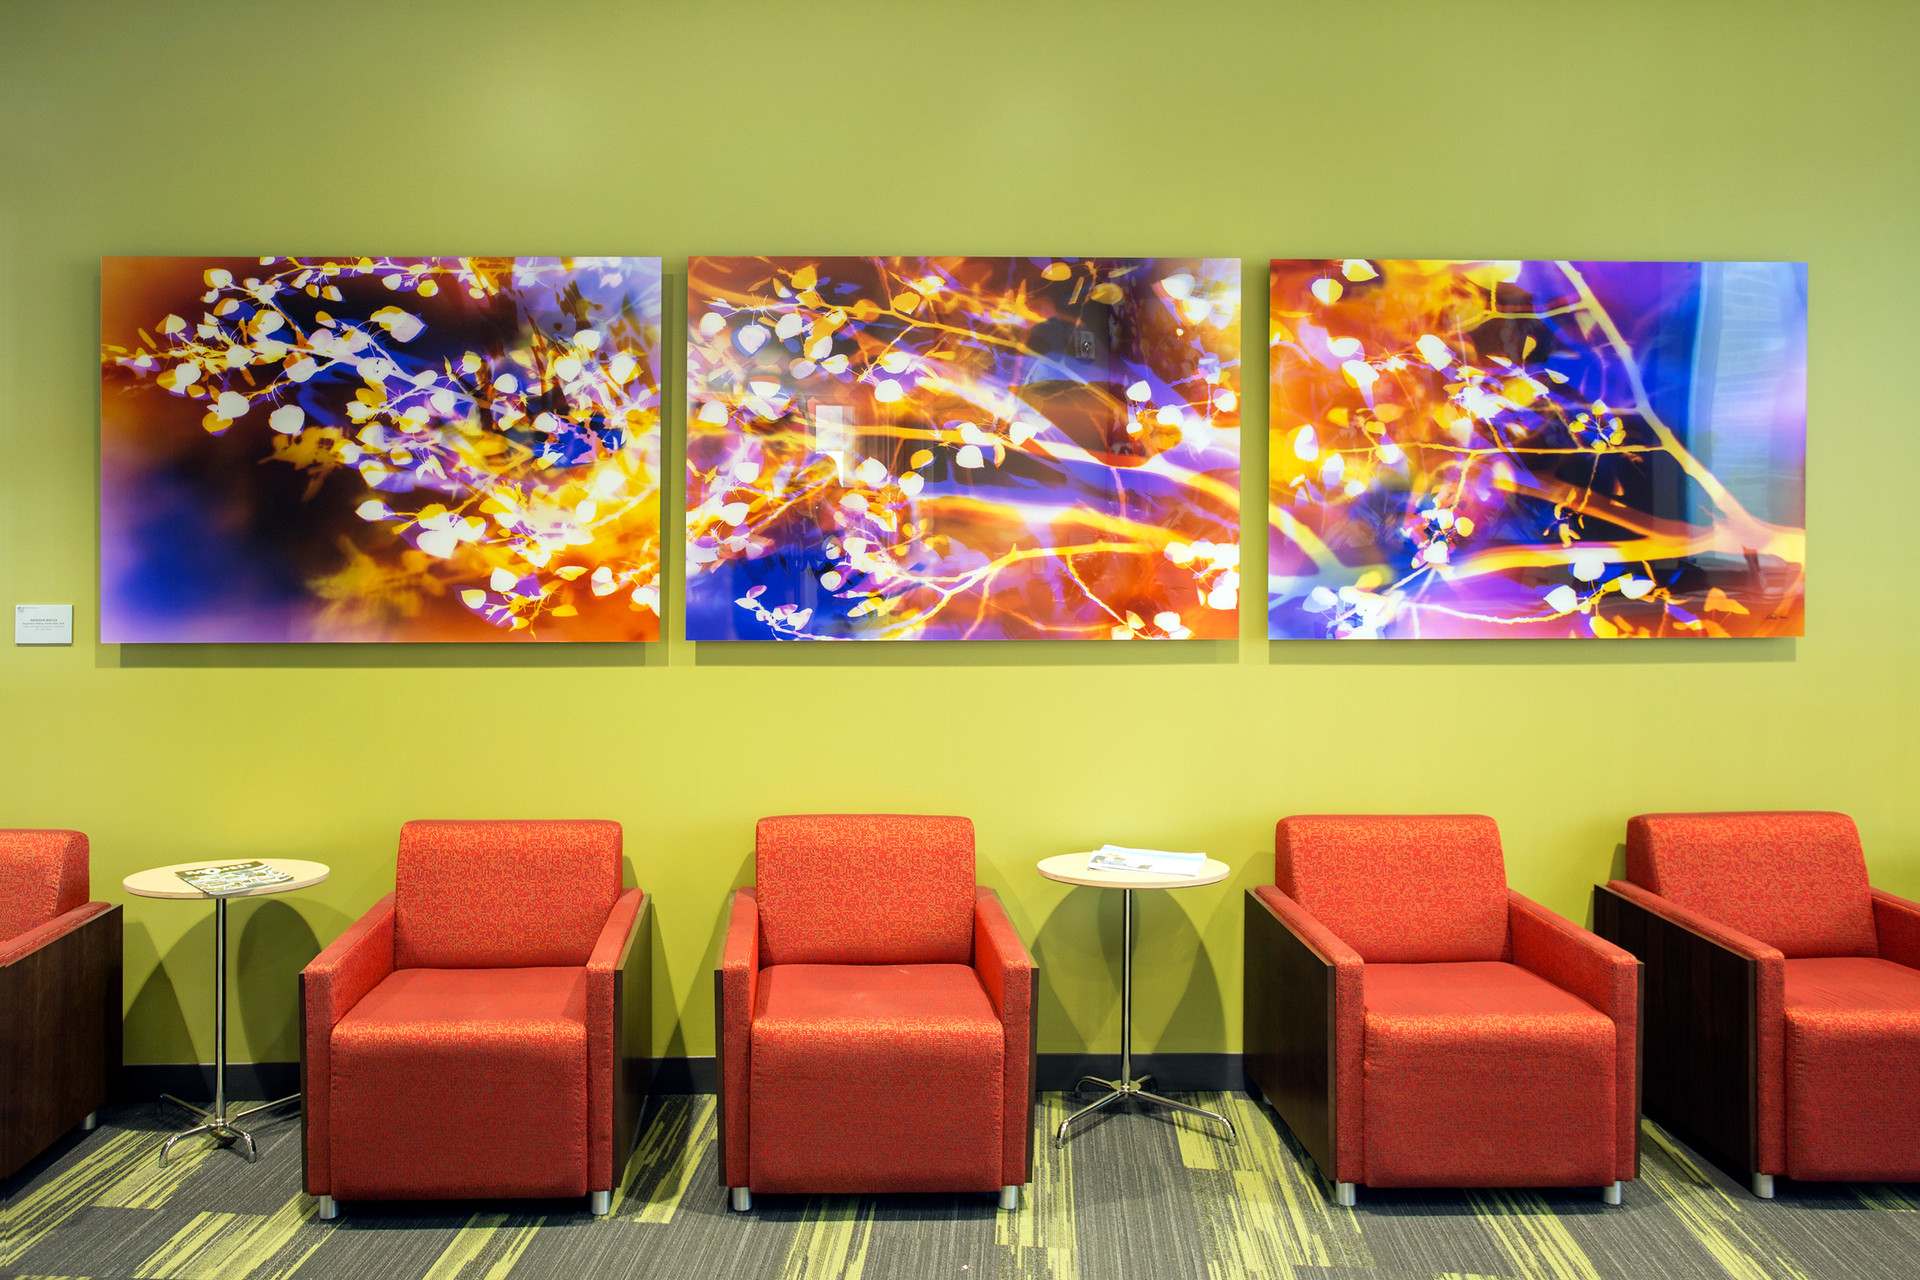 "Inspired by Nature: Pando View, 40"" x 180"" (3 40"" x 60"" panels), Commission by Utah Public Art Program, Installed in Noorda School of Dentistry at University of Utah, Salt Lake City, UT"